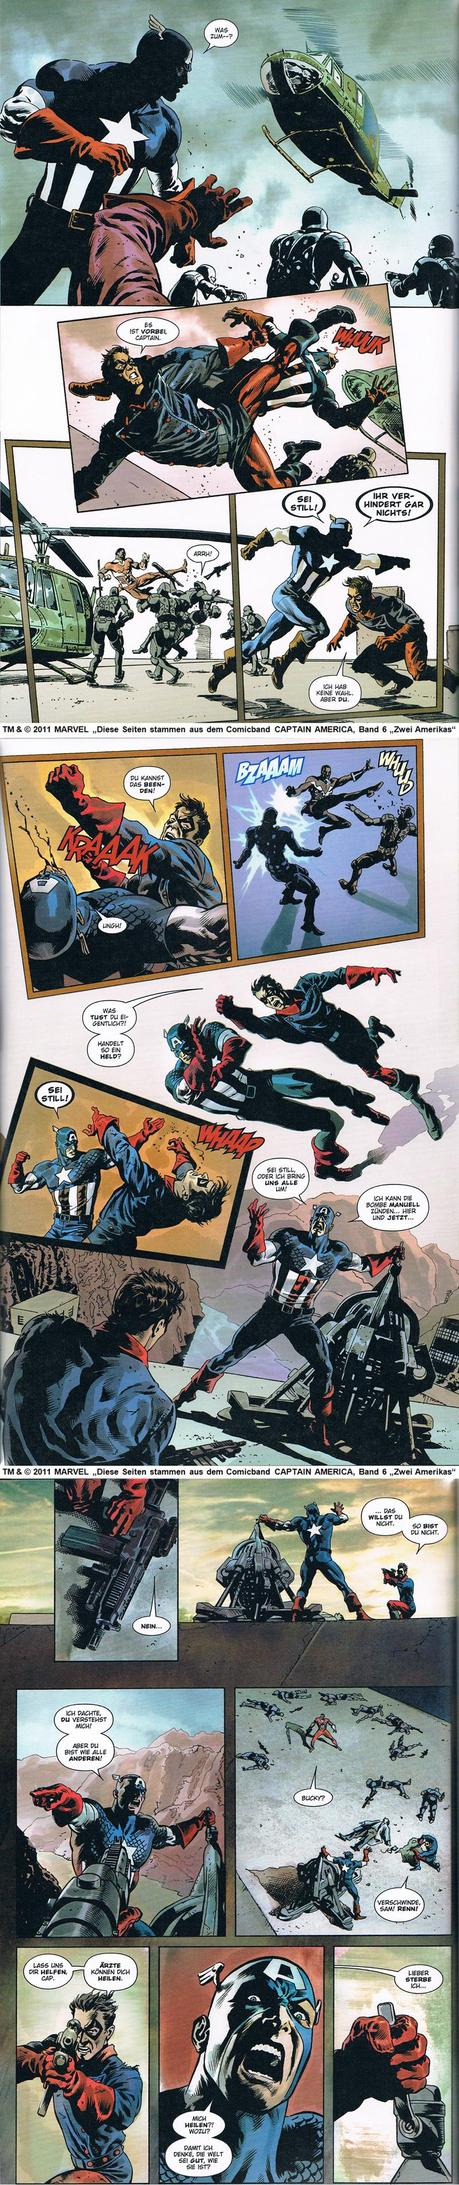 Comicstrip in Bloggeraktion zum Deutschlandstart von Captain America - The first Avenger